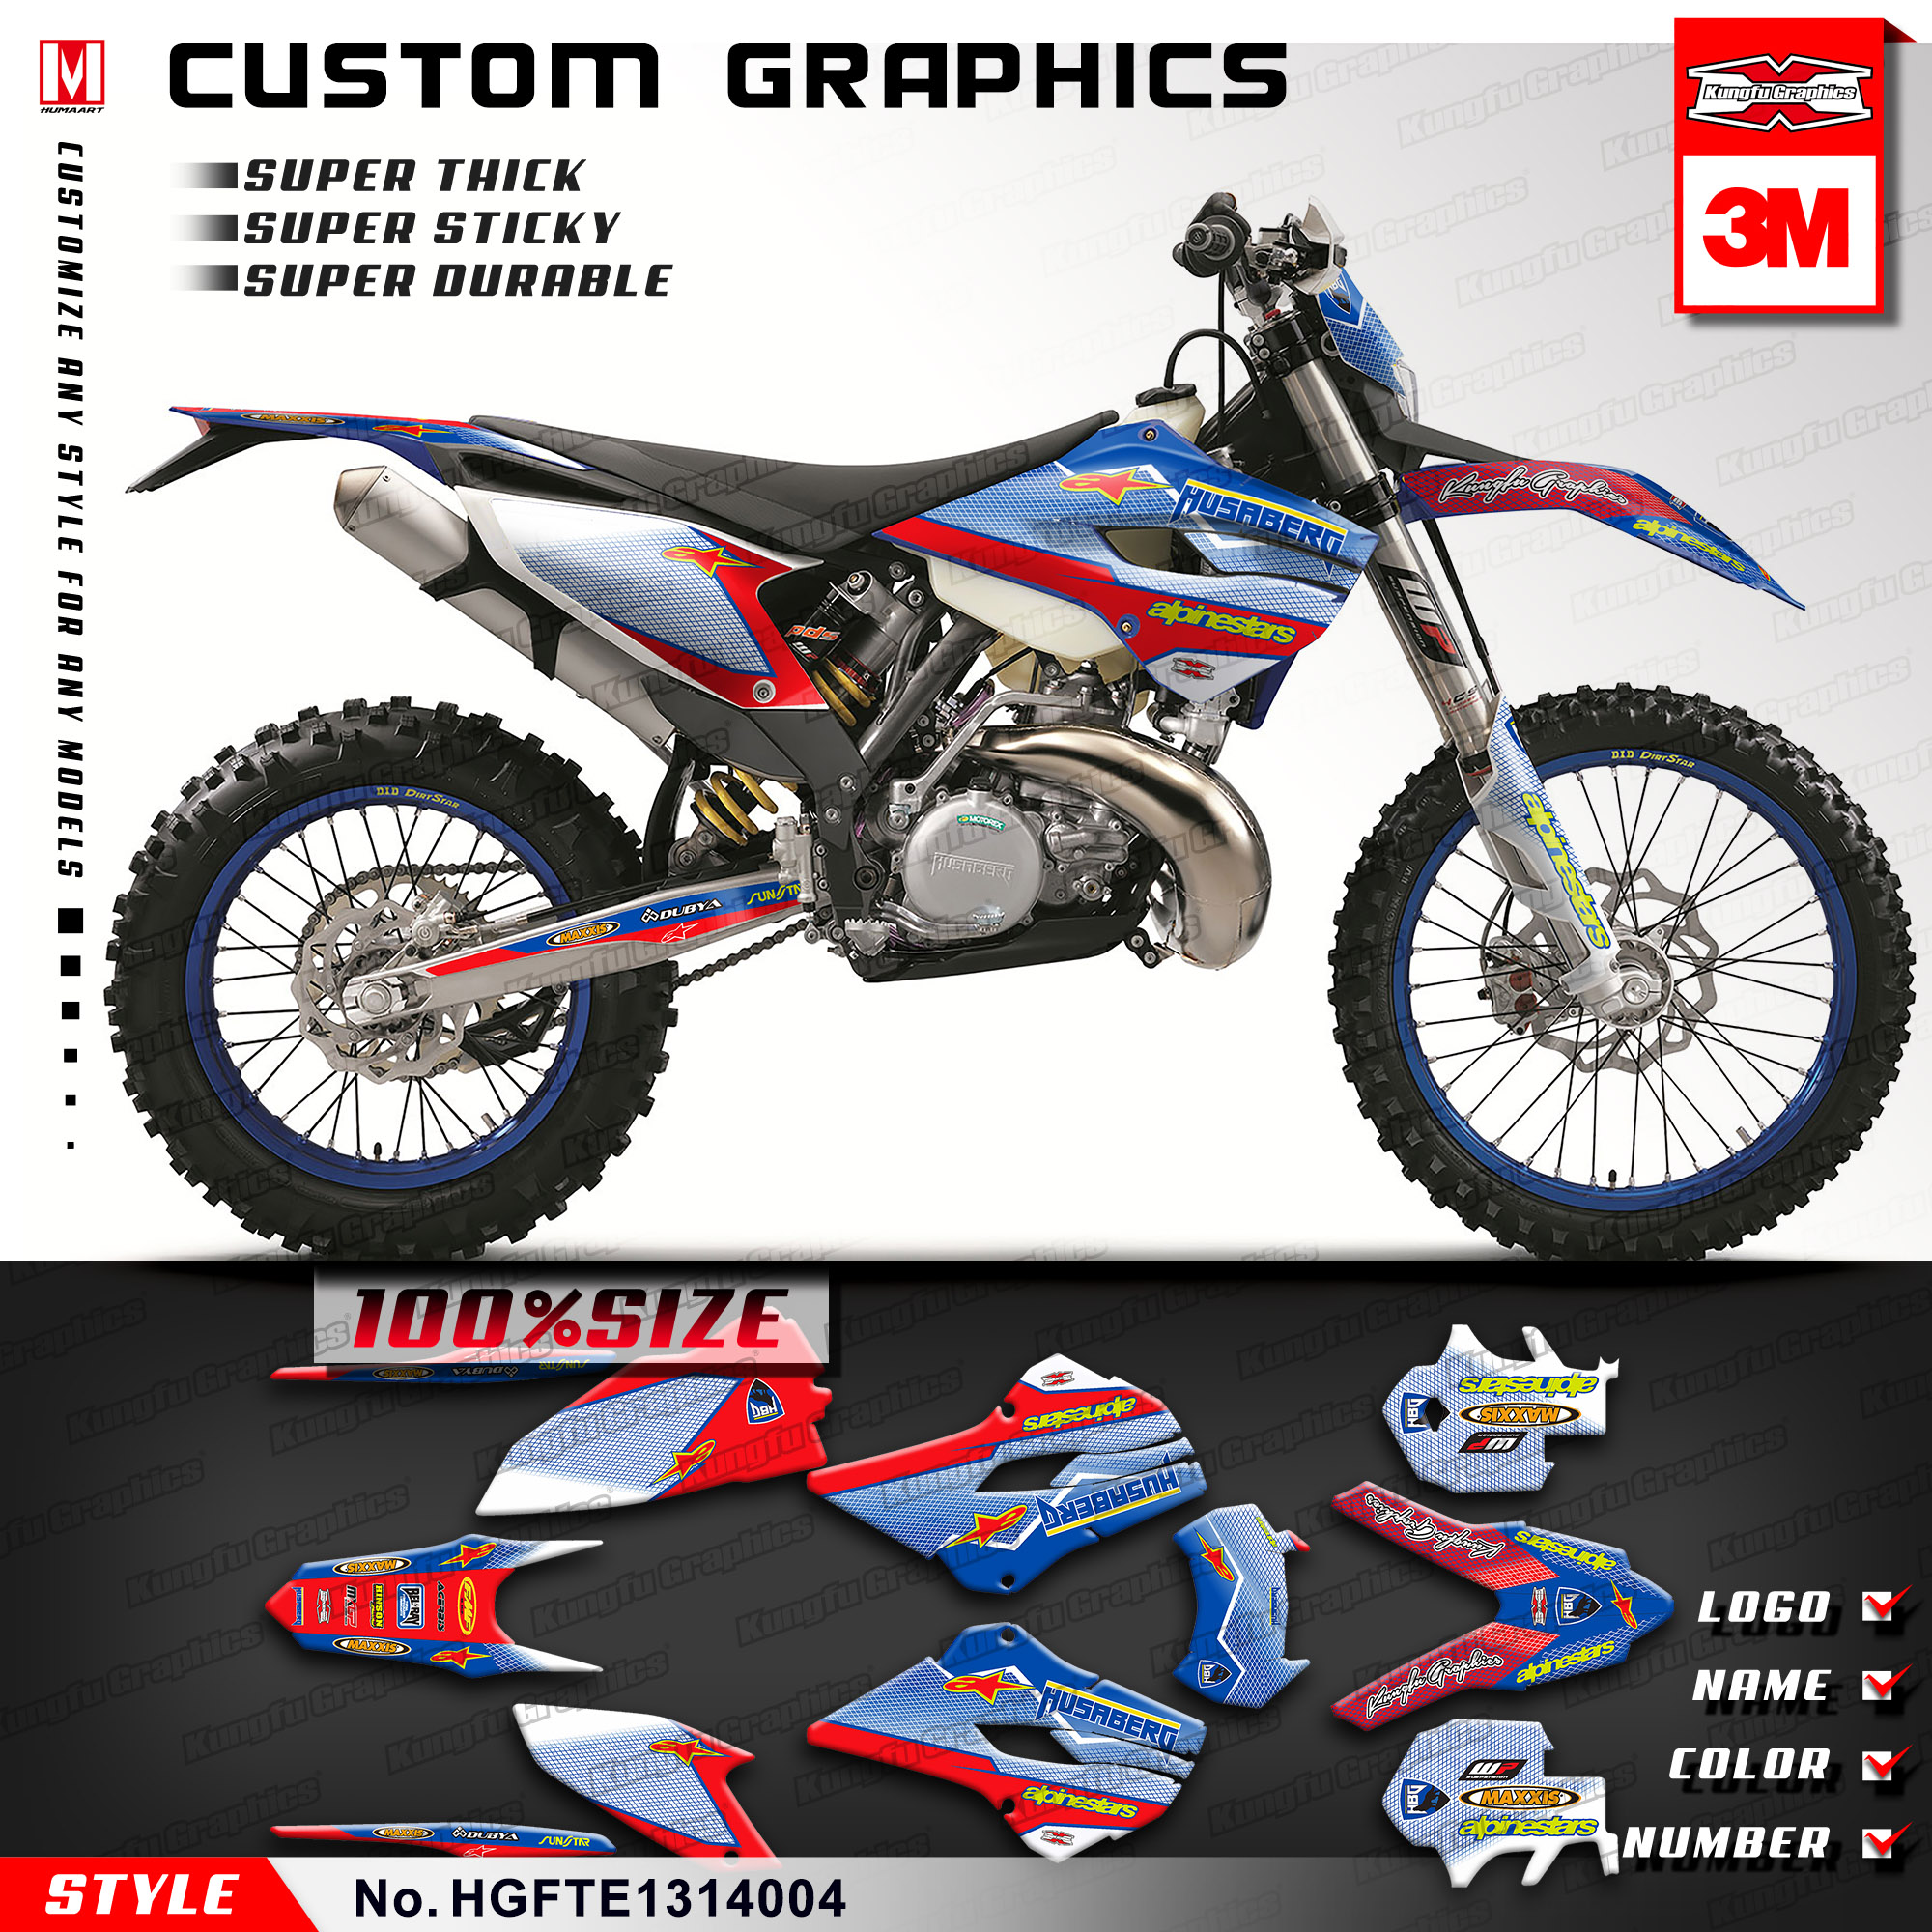 Us 139 89 kungfu graphics die cut stickers mx decal kit for husaberg te 125 250 300 fe 250 350 450 501 2013 2014 style no hgfte1314004 in decals